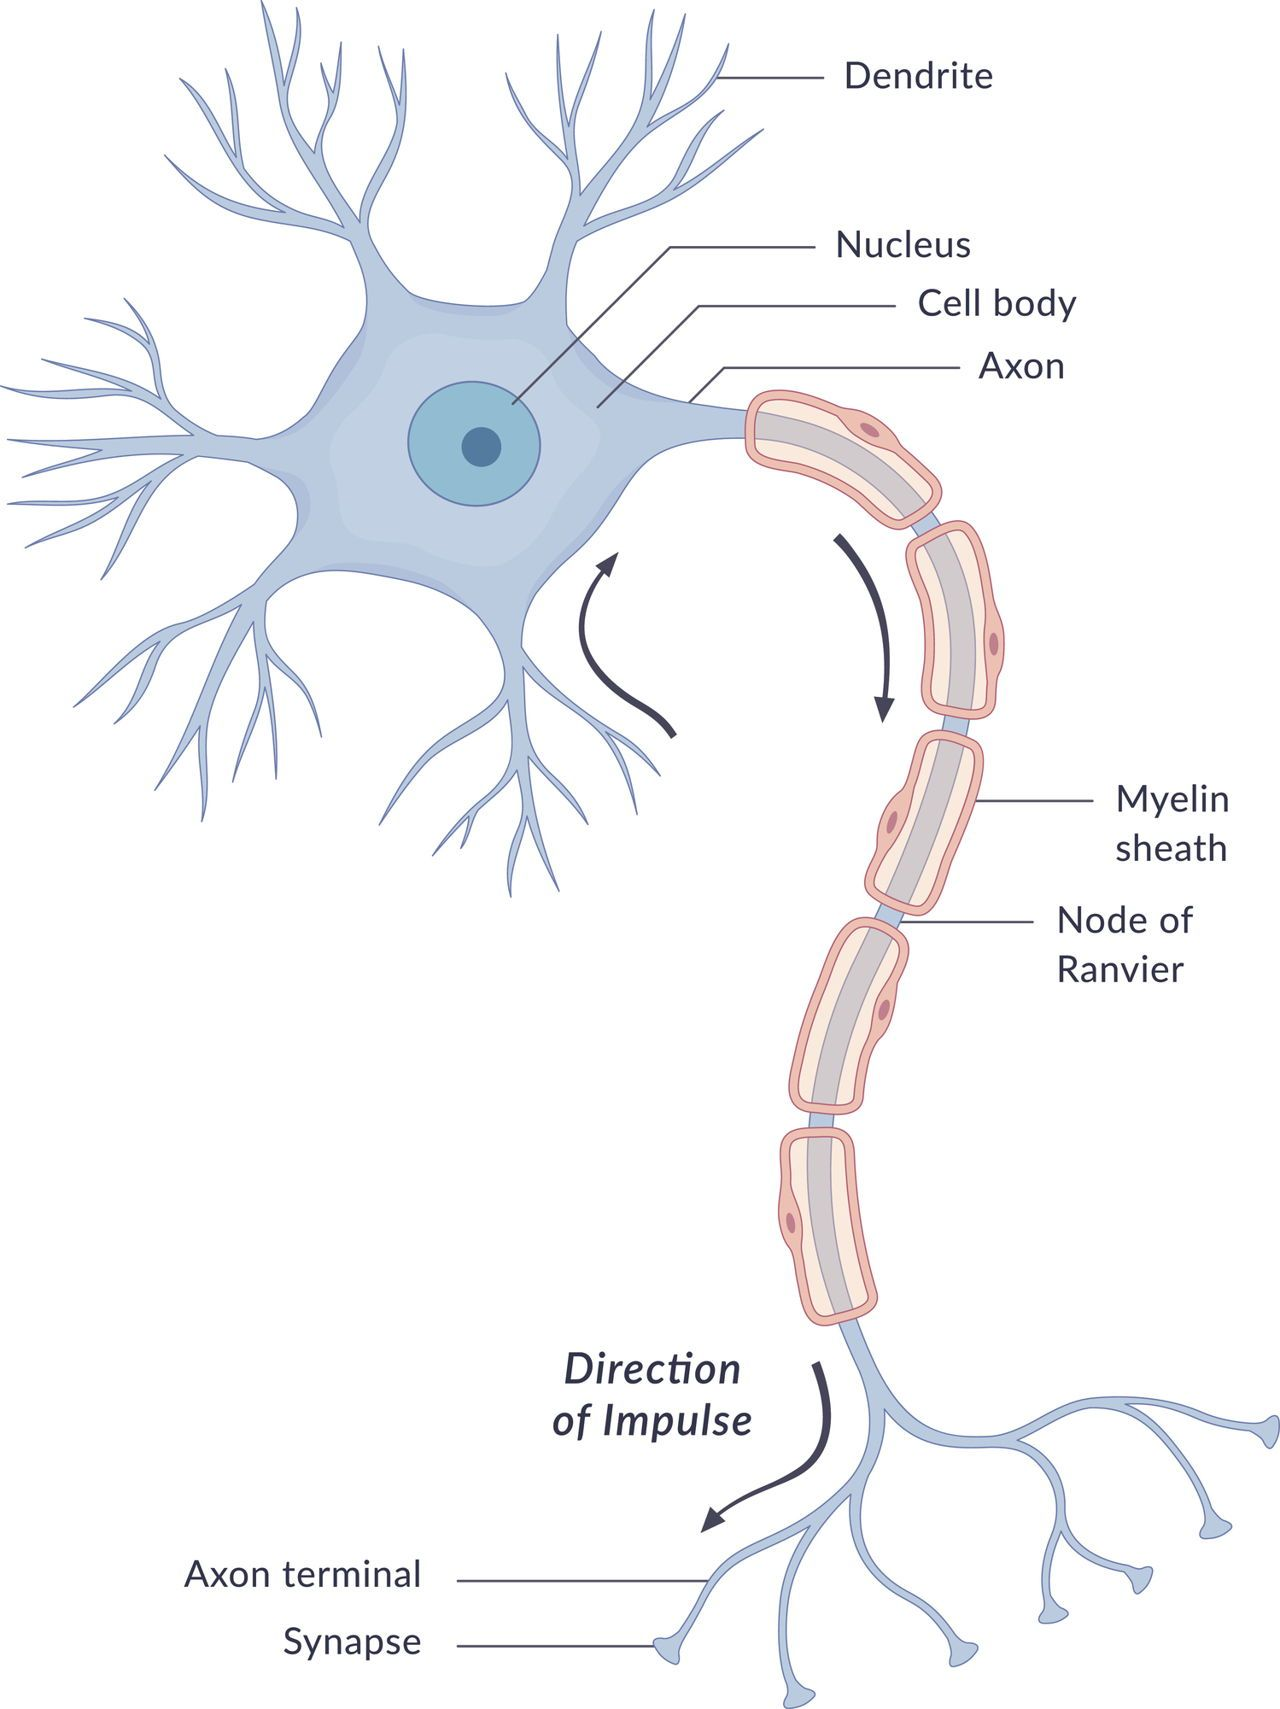 medium resolution of neuron diagram nervous system neuron diagram nervous system nervous system diagram full neorns